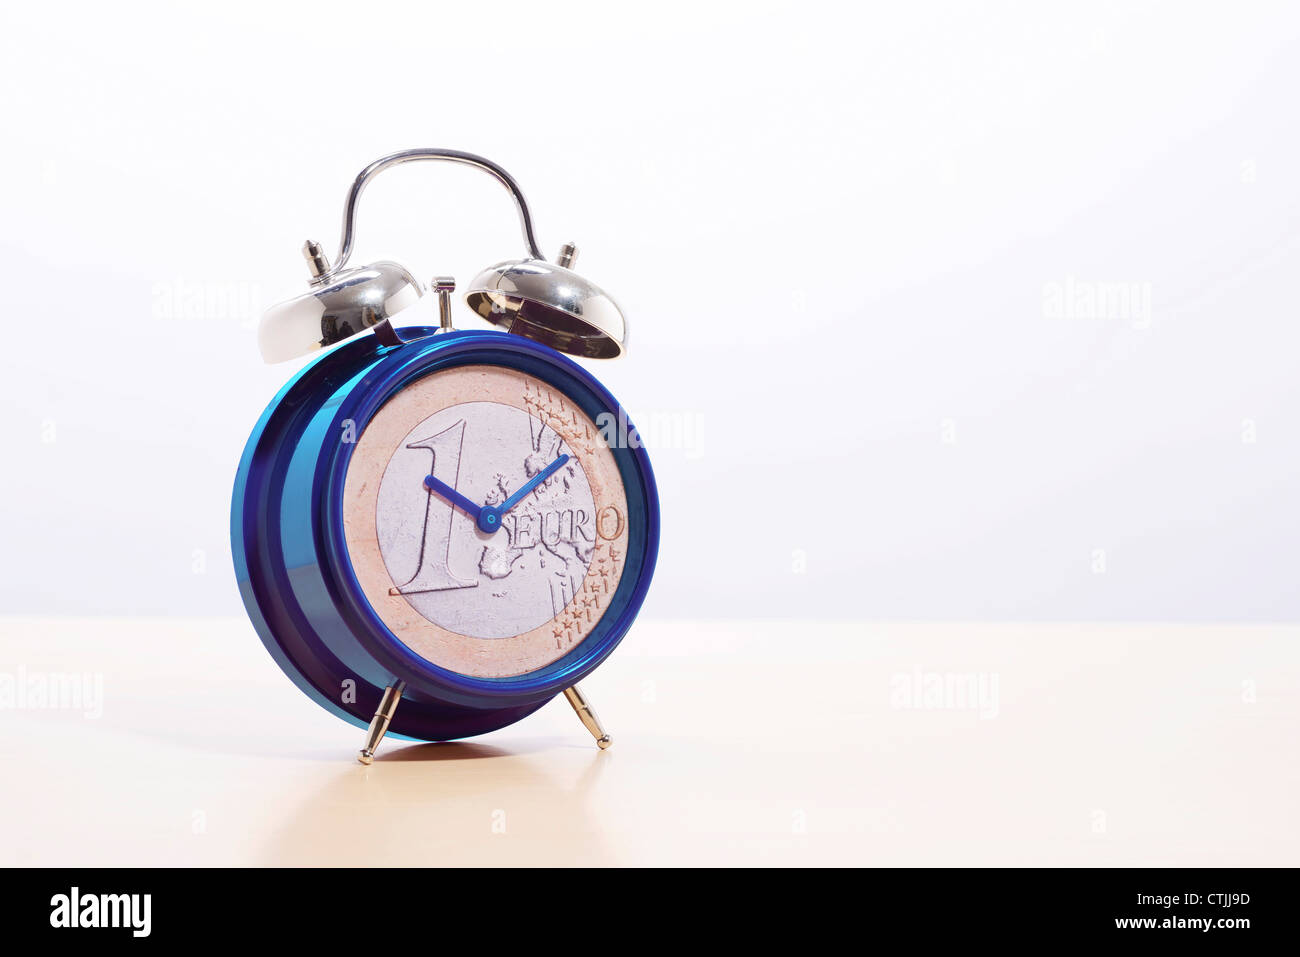 EU Europe euro coin on an alarm clock - Stock Image